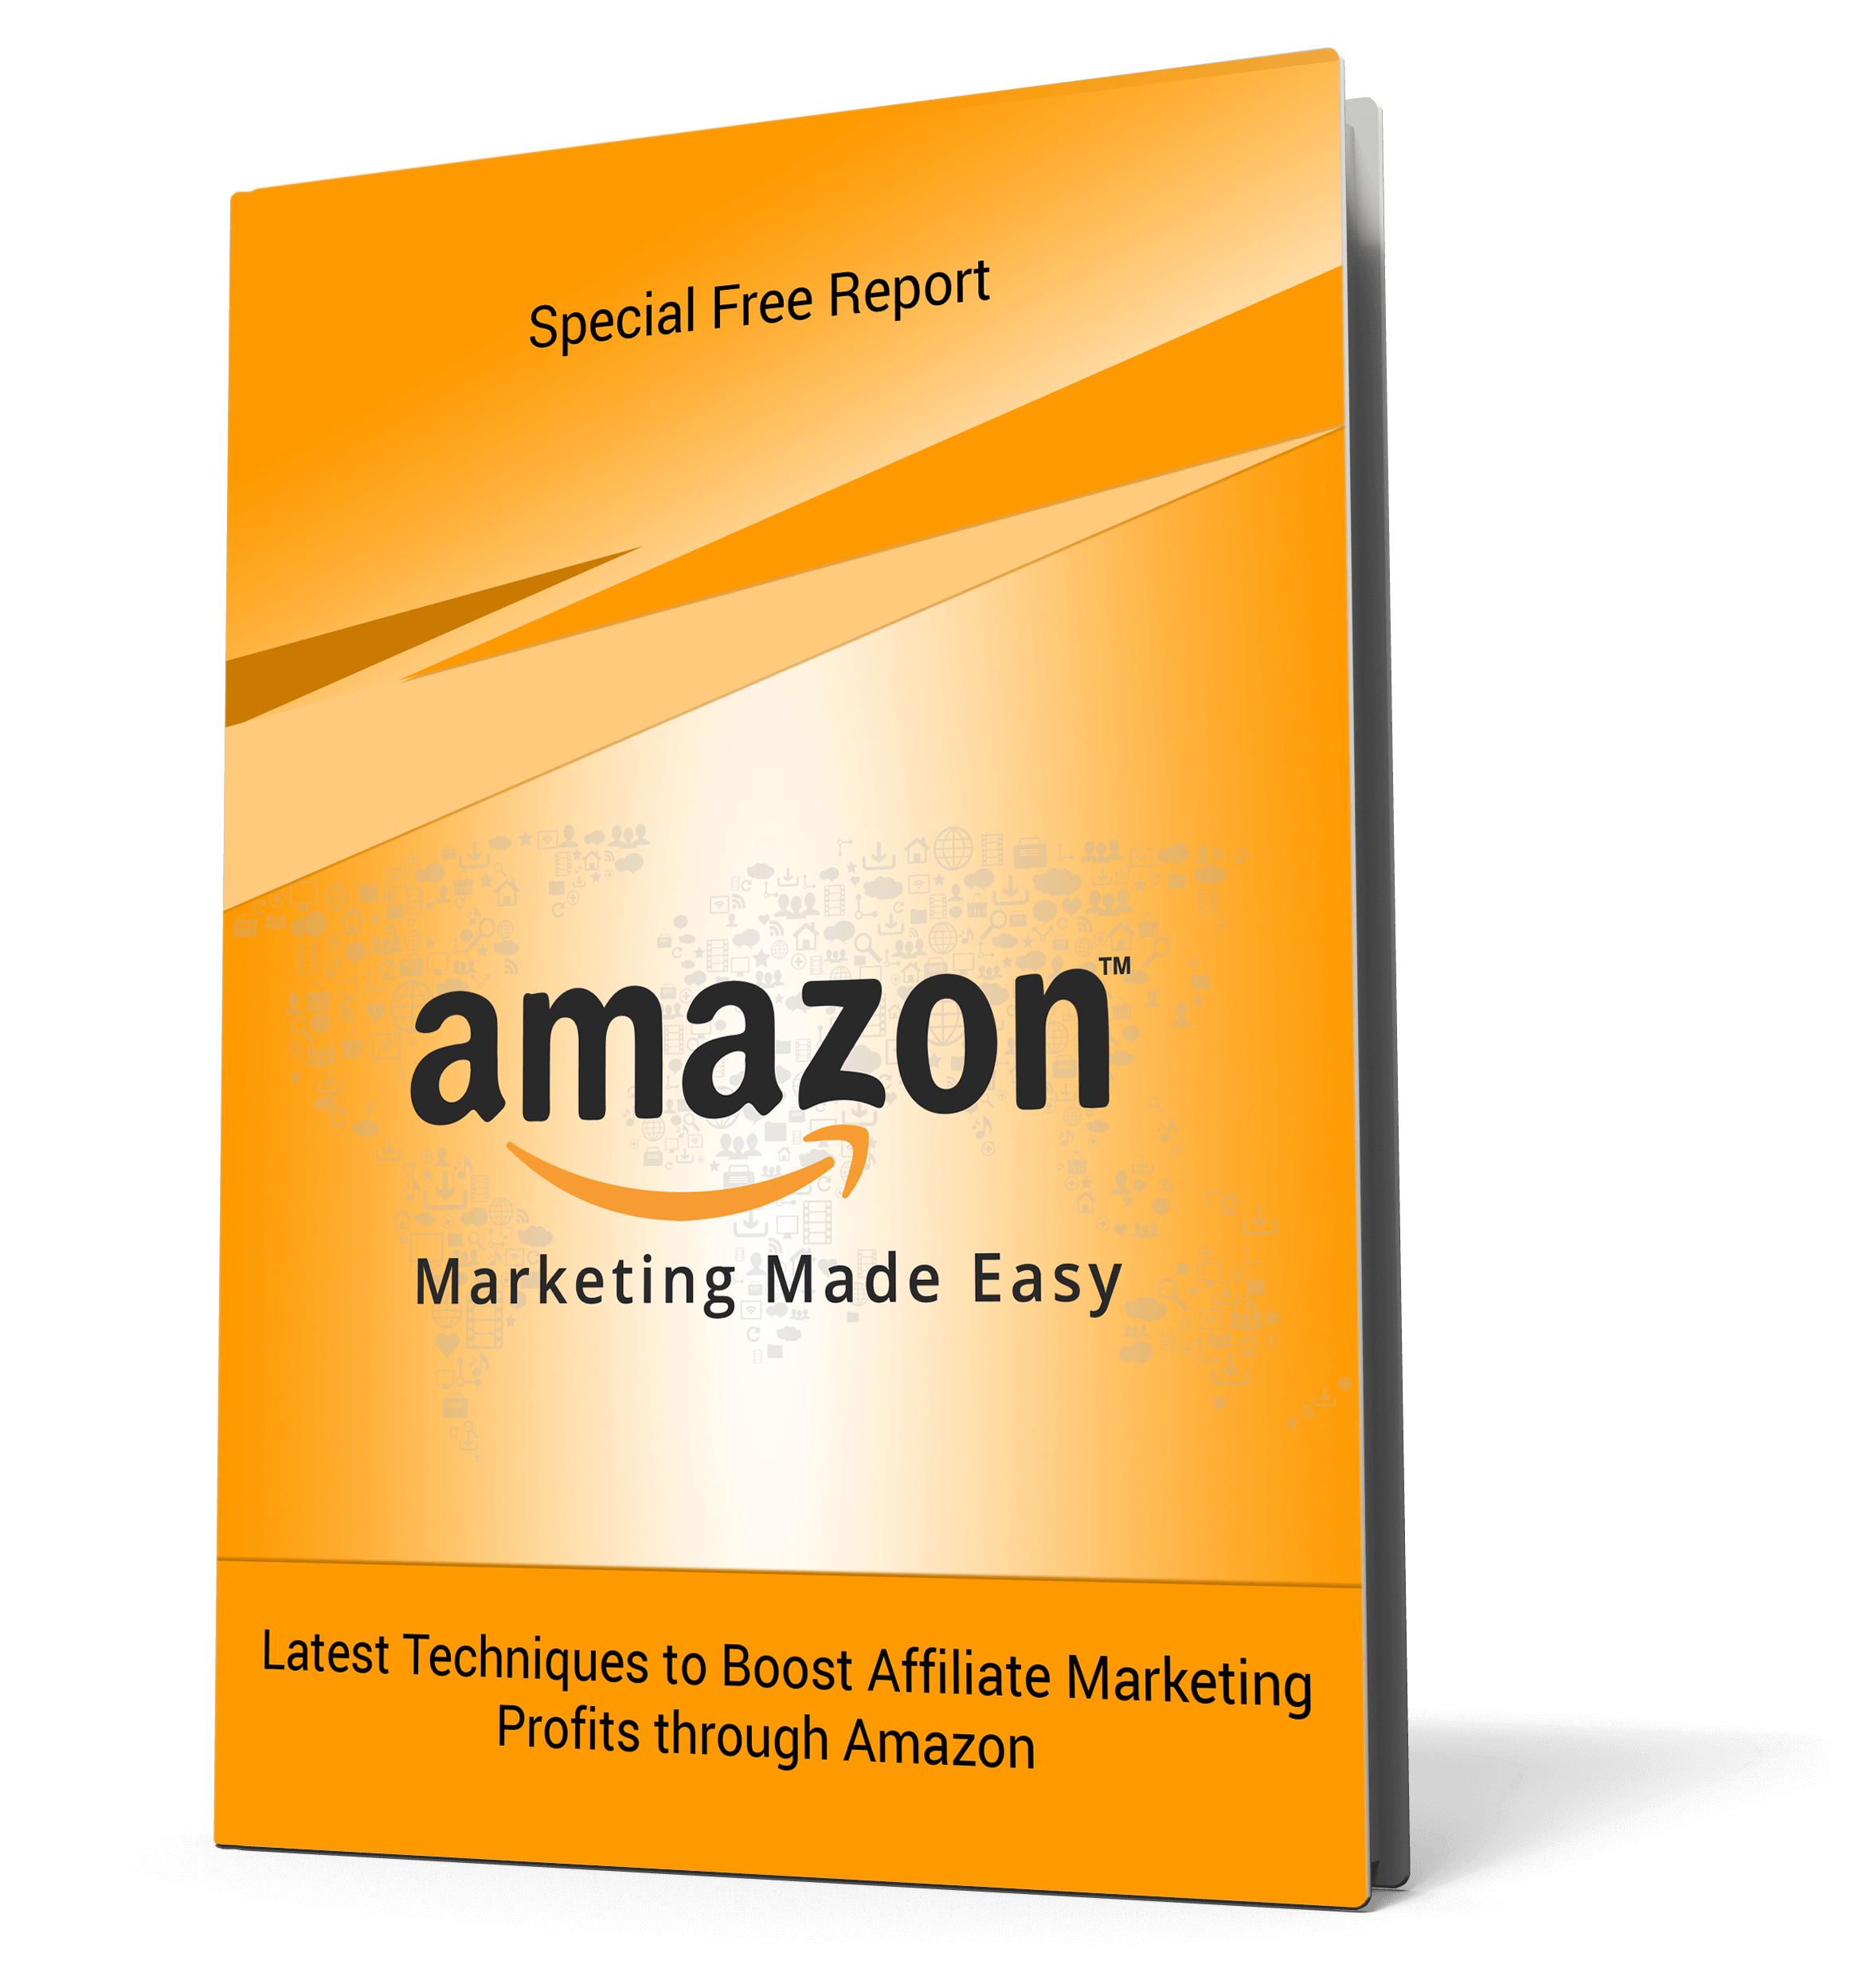 amazon marketing special report